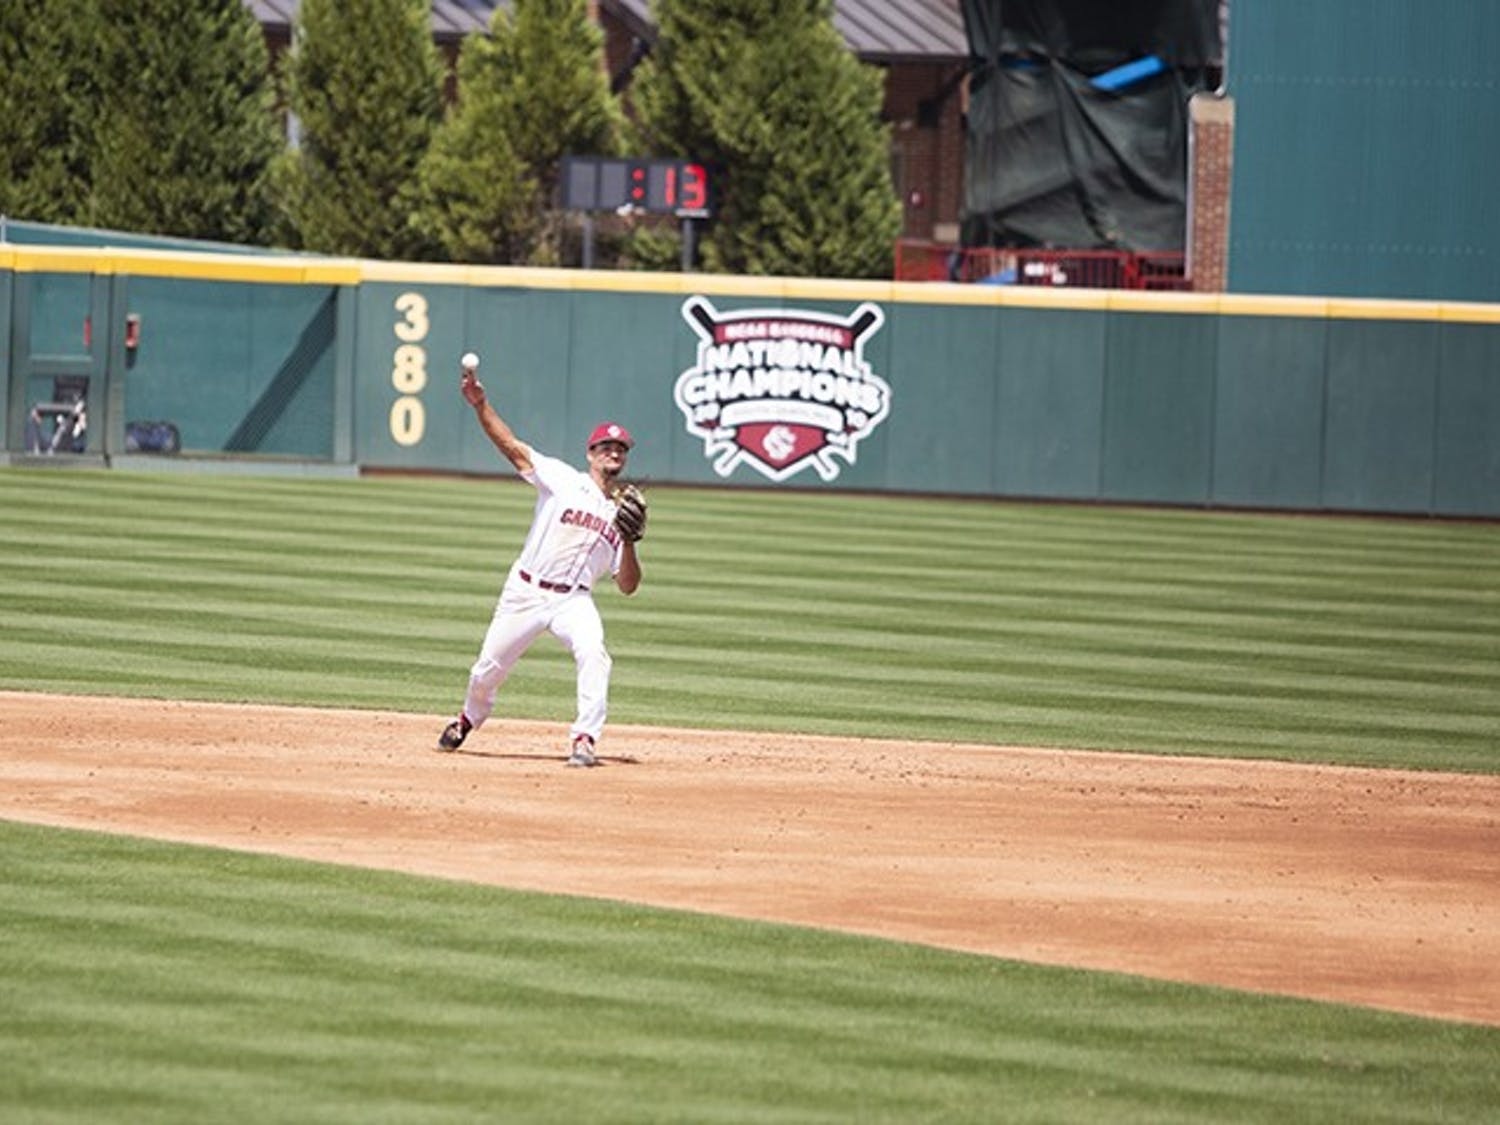 Sophomore Noah Campbell throws the ball to first during the second game against Auburn at Founders Park on Saturday.